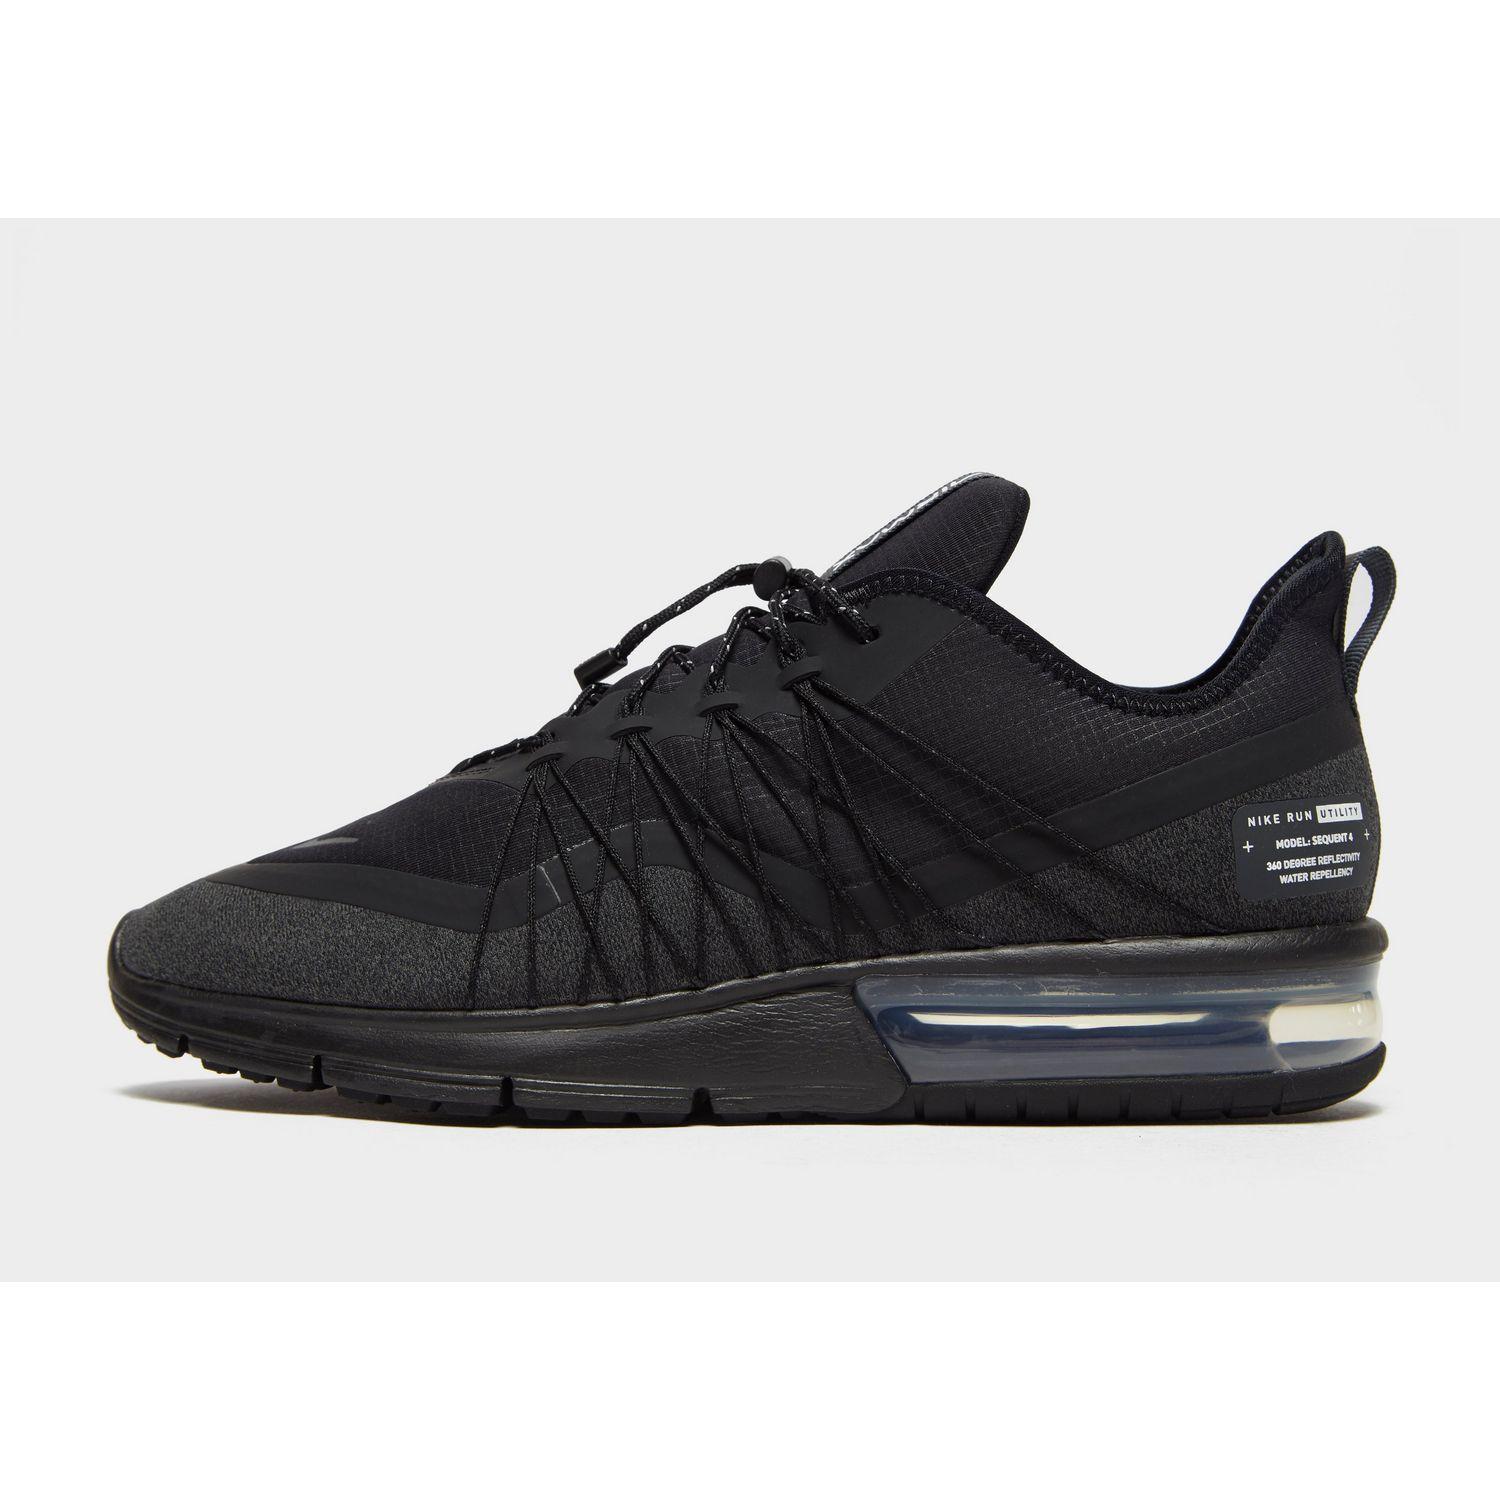 b62f3aa7ead Lyst - Nike Air Max Sequent 4 Shield Men s Shoe in Black for Men